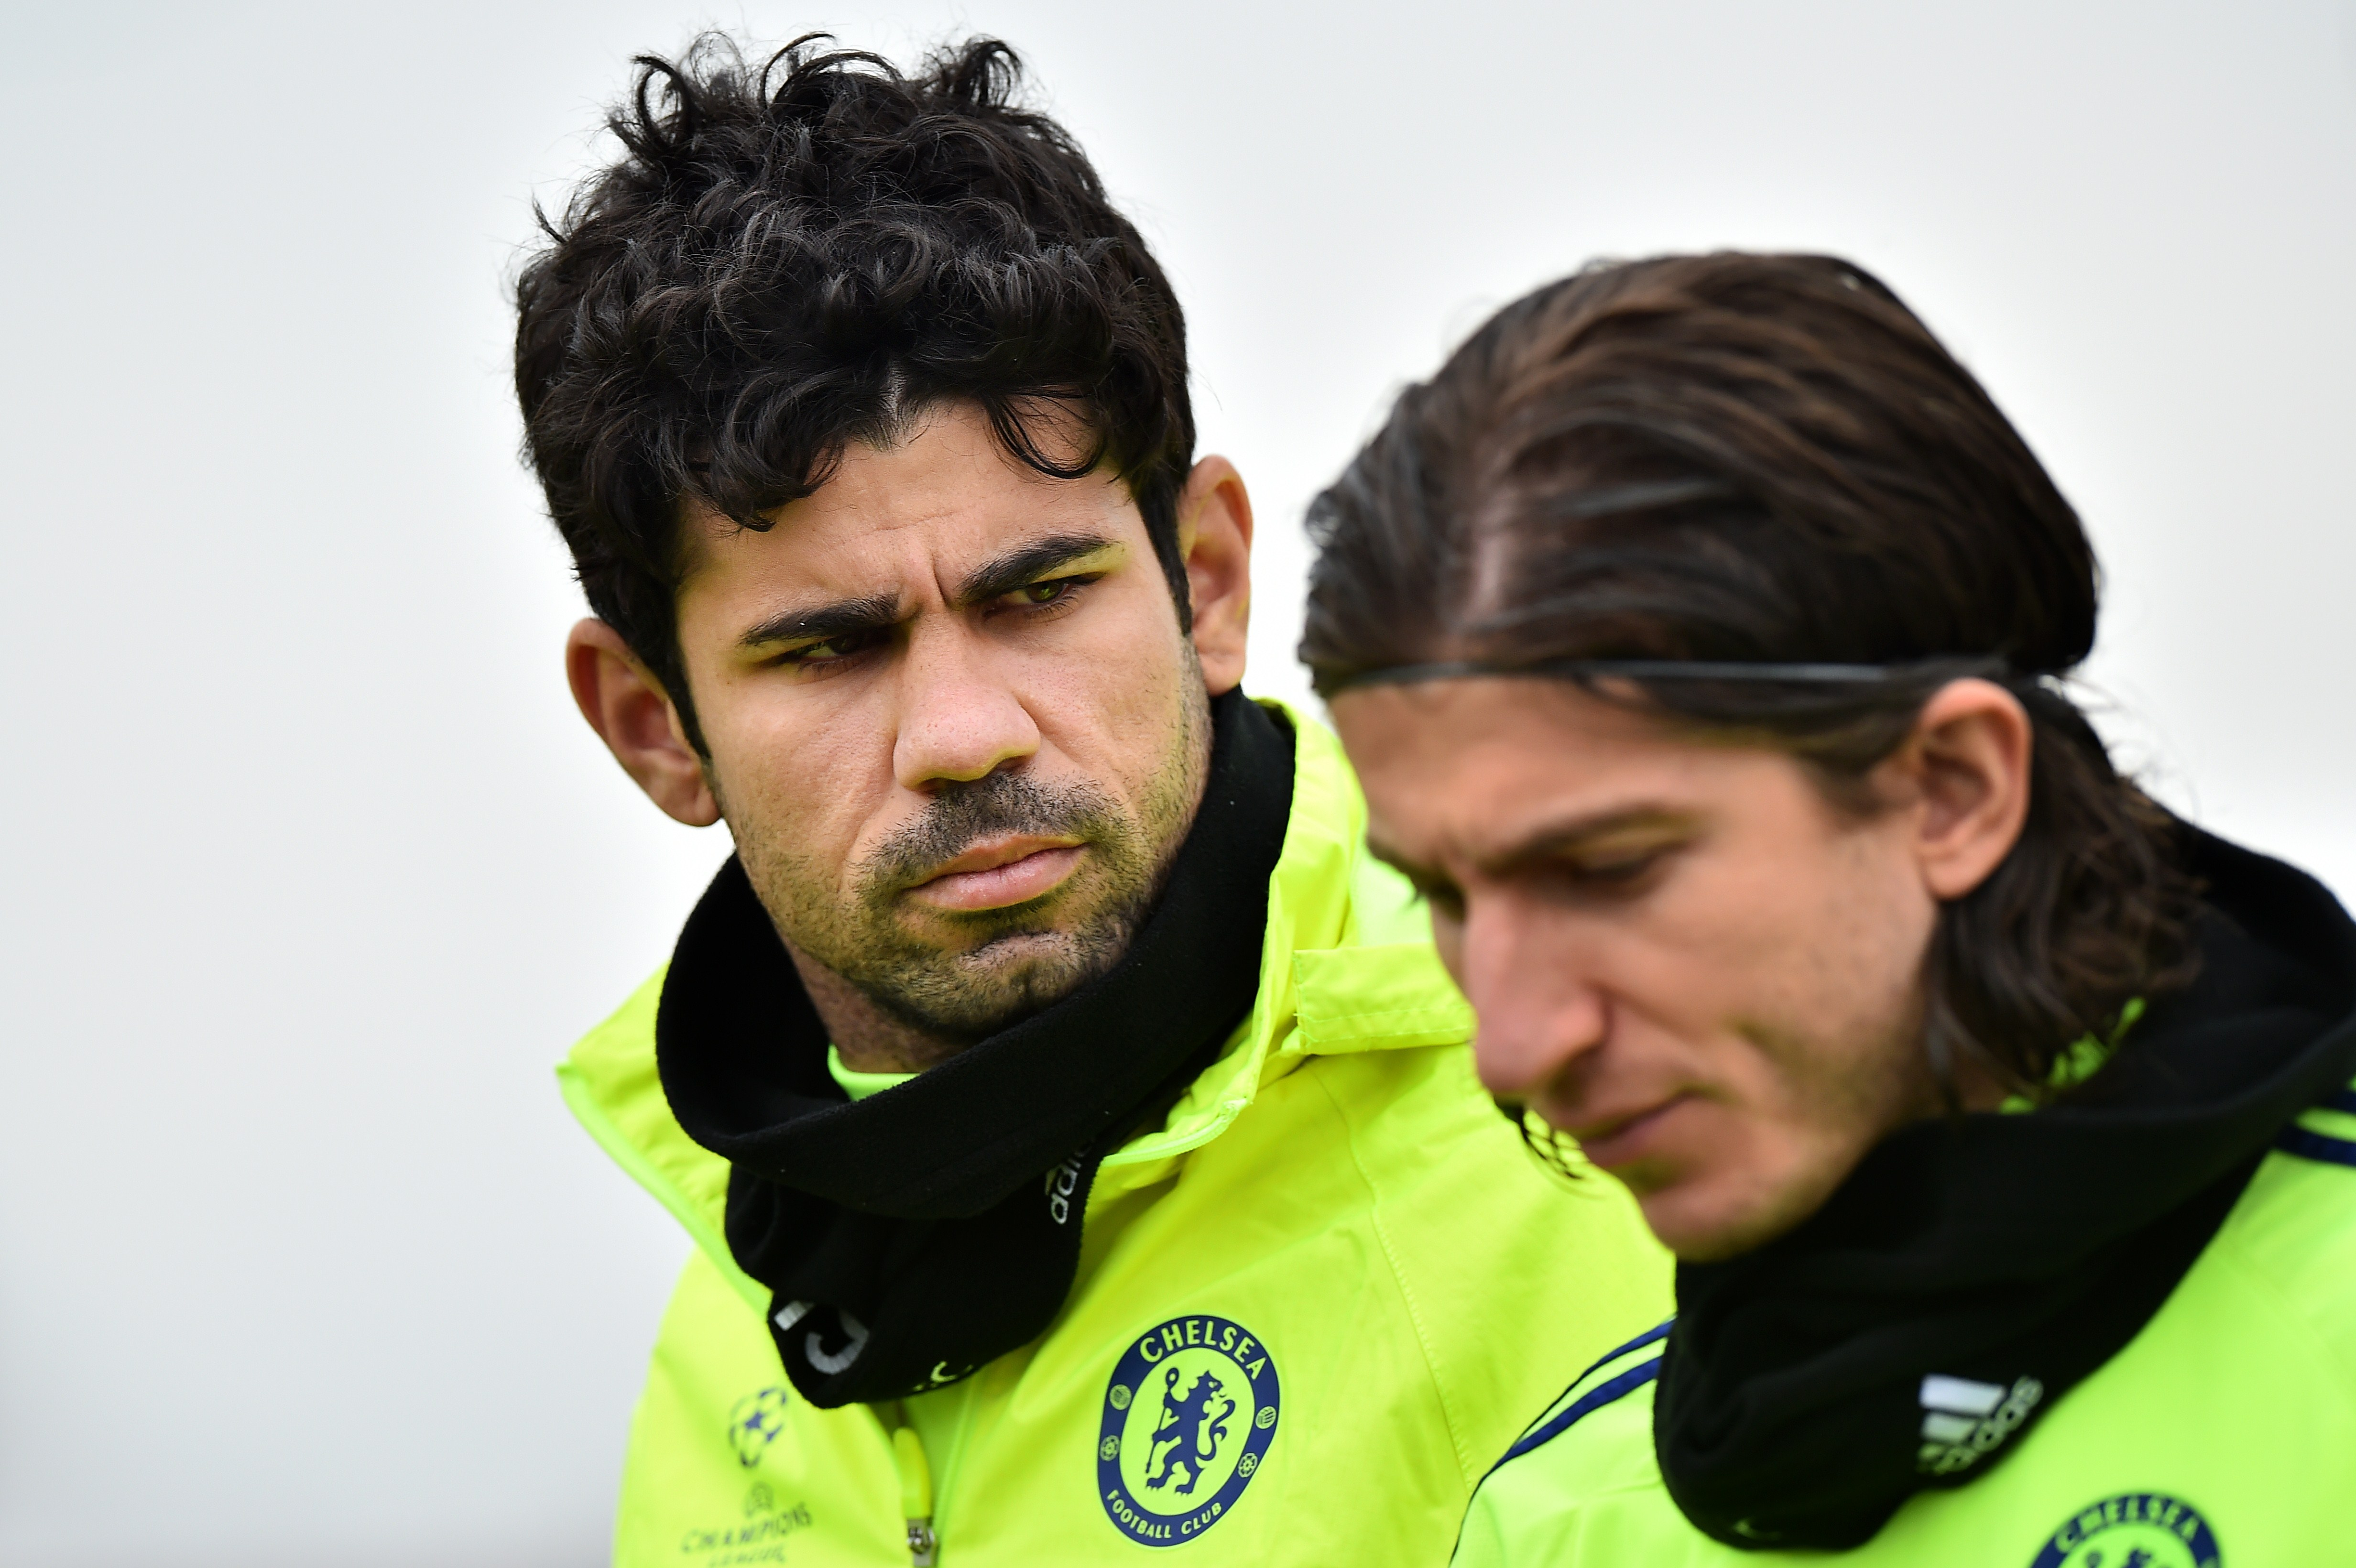 Former Chelsea ace Filipe Luis tells Diego Costa to join him at Atletico Madrid amid transfer rumours